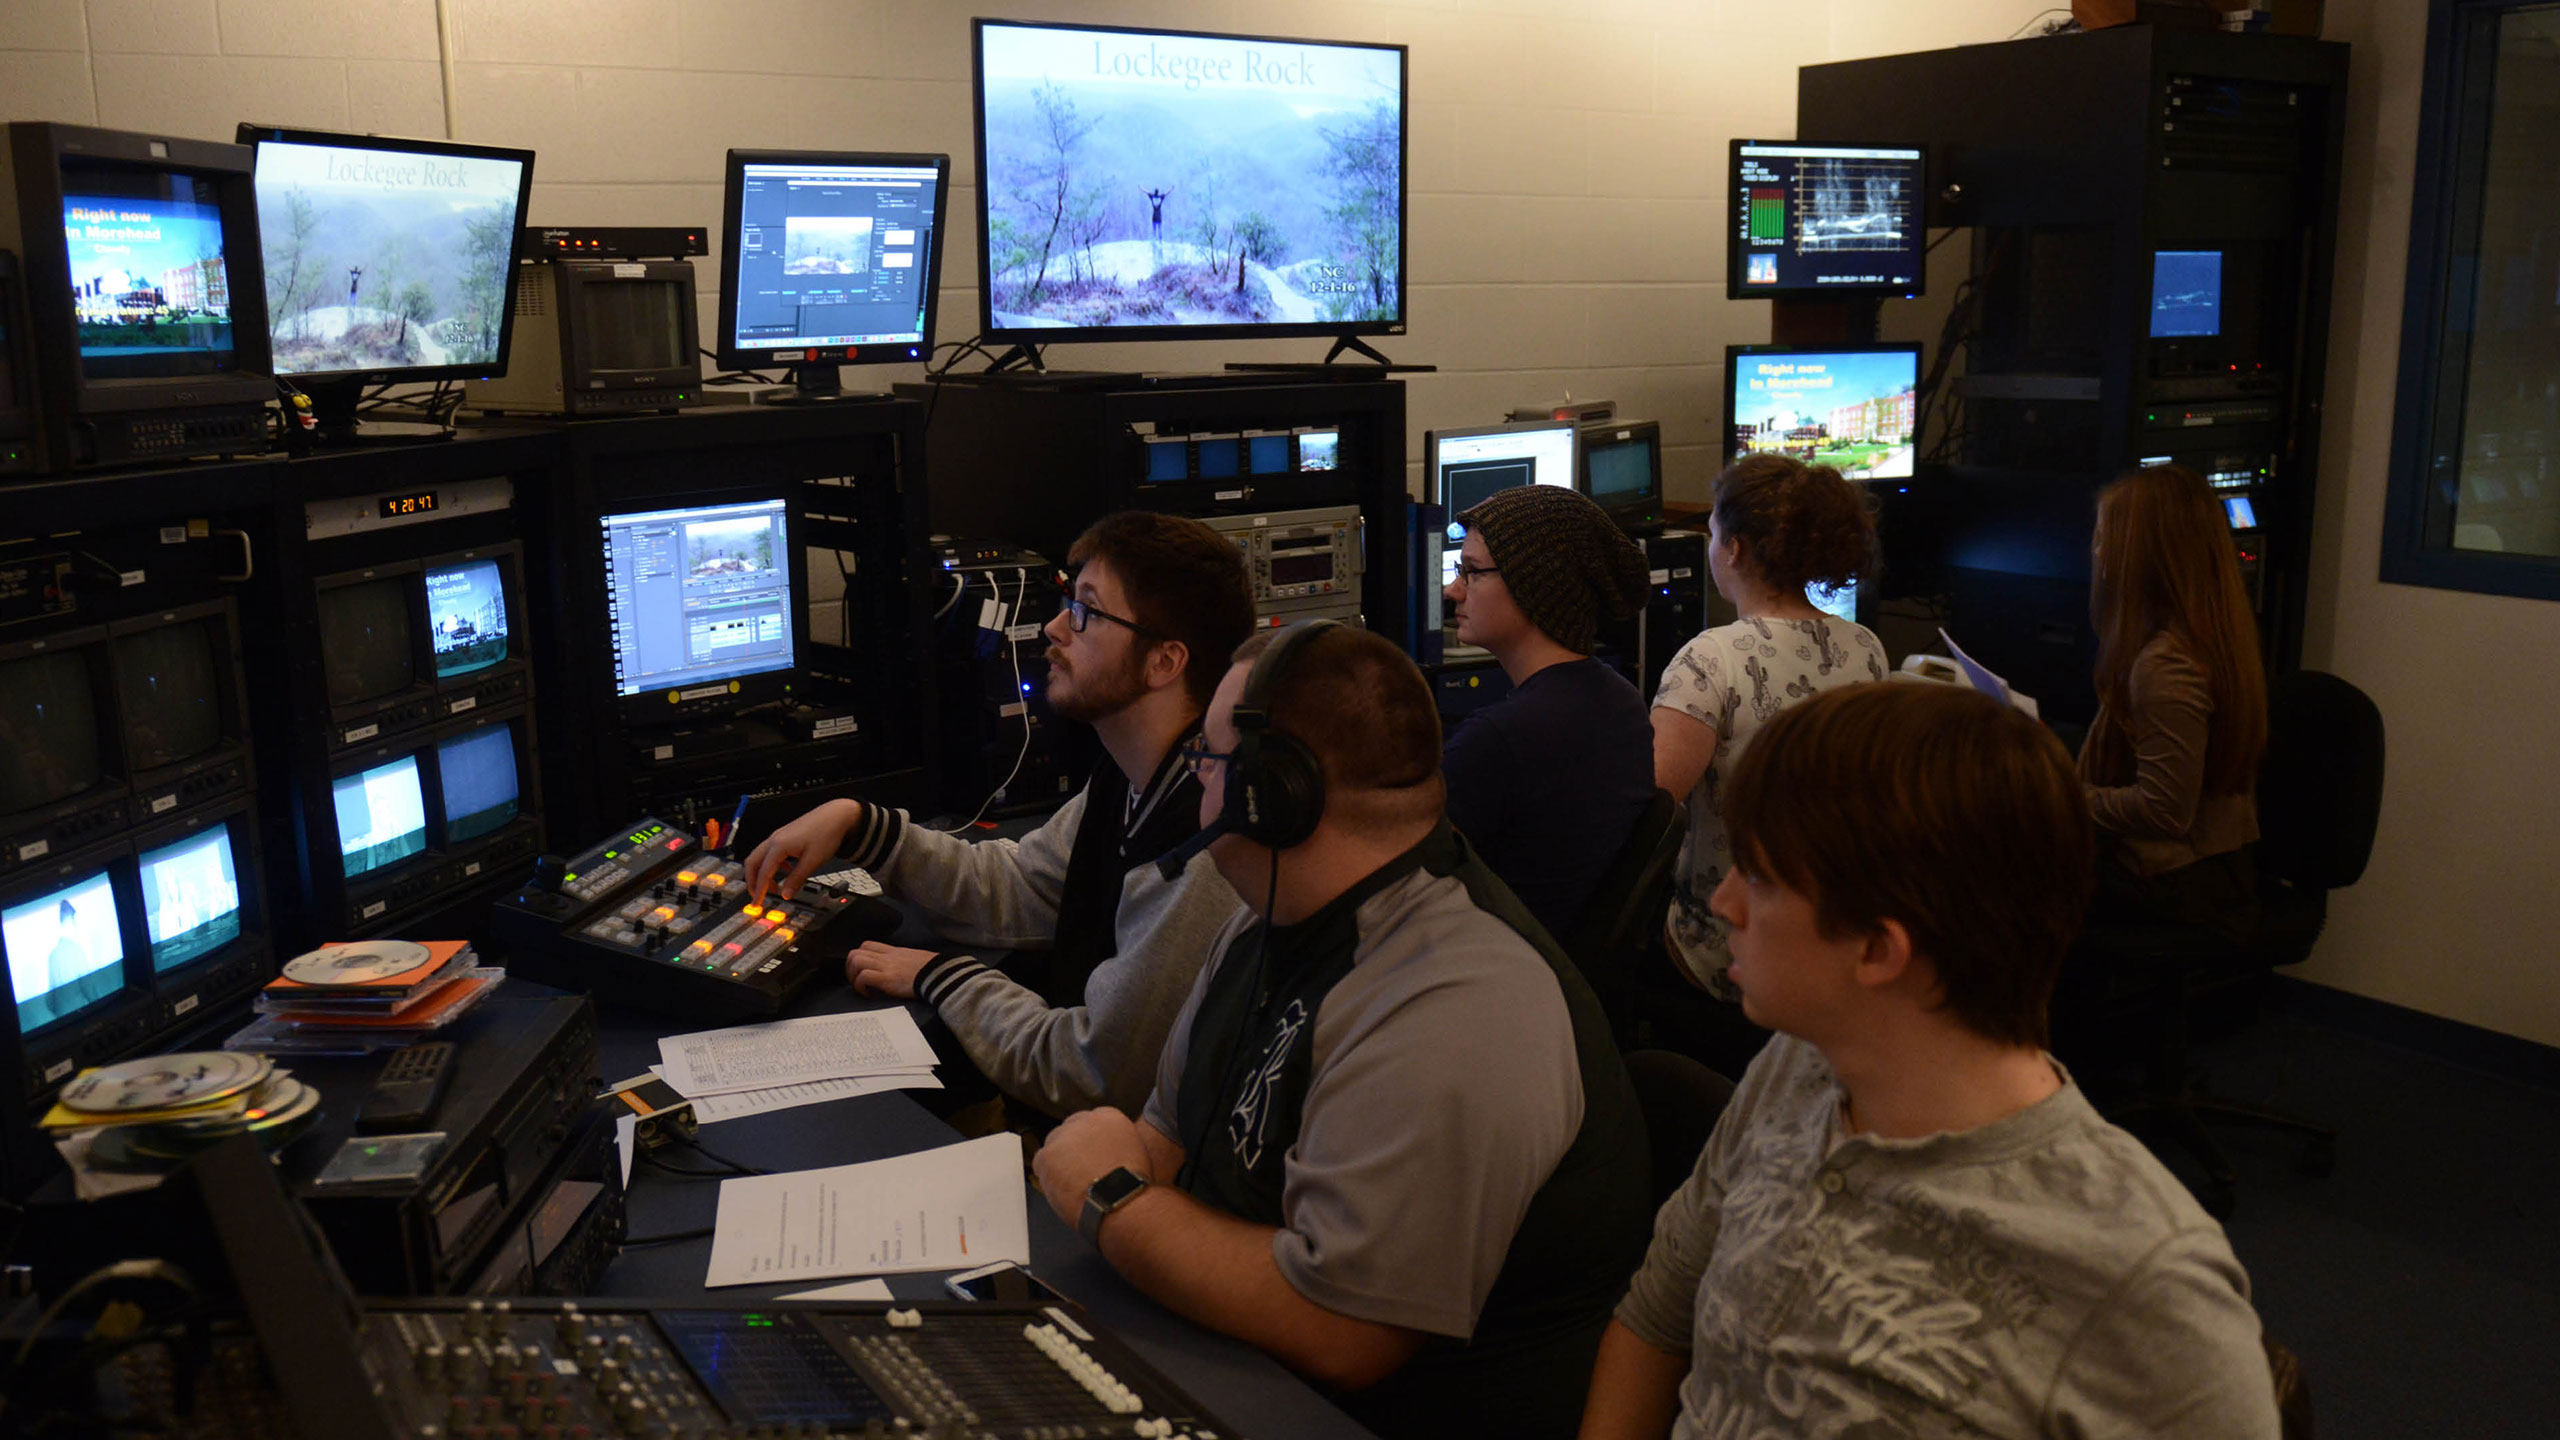 Students in a TV control room.